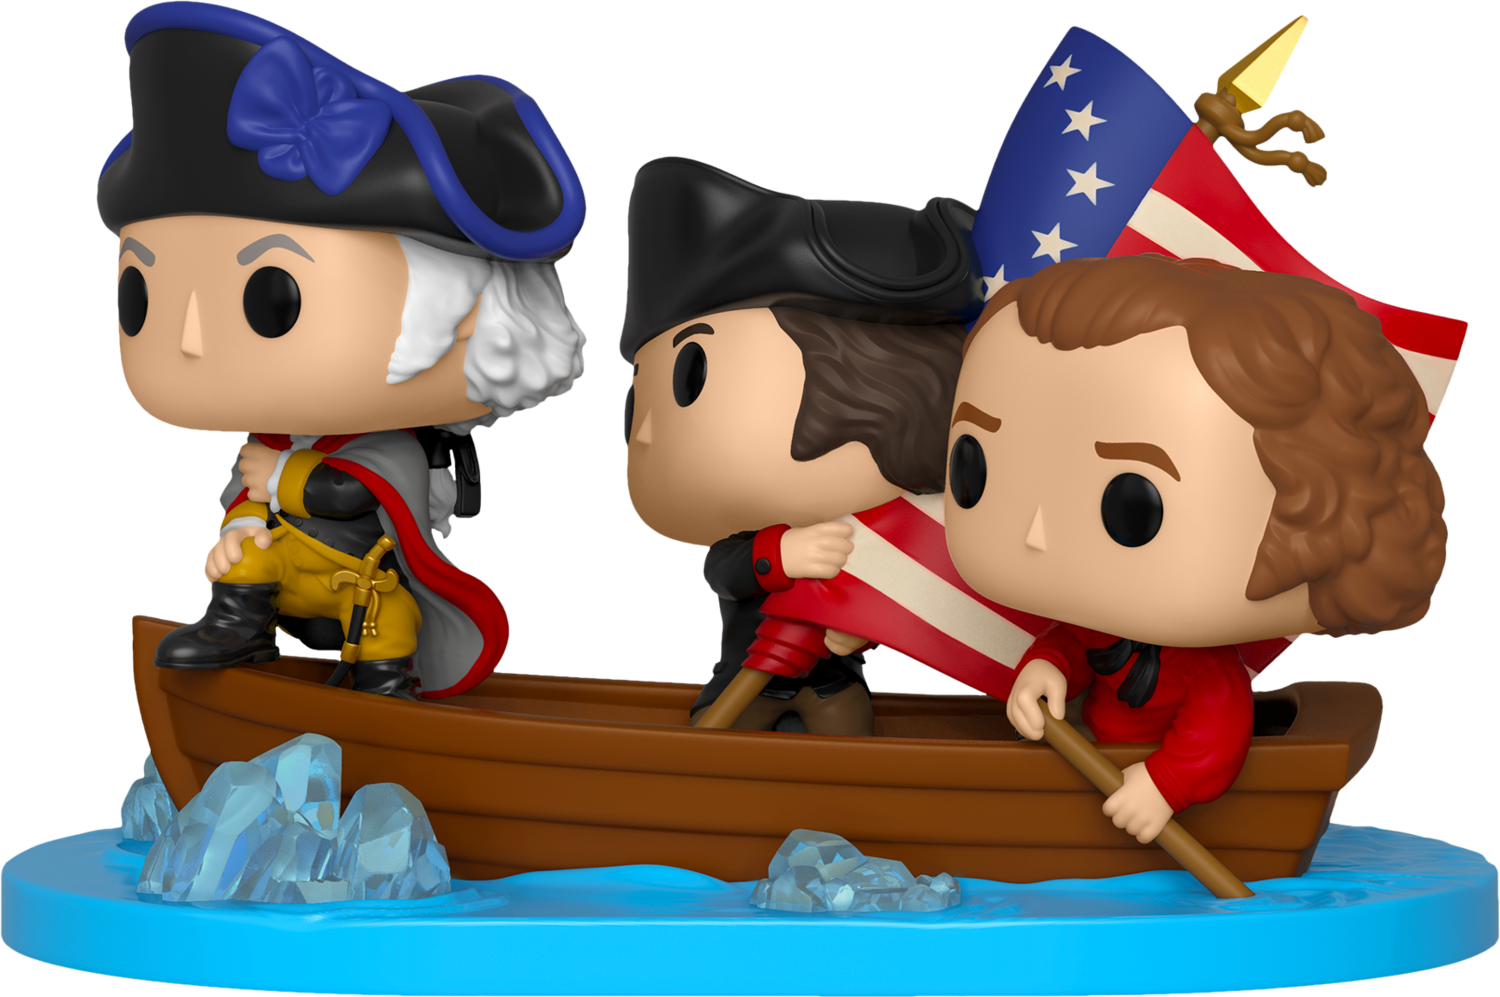 PRE-ORDER Exclusive American History - George Washington crossing the Delaware River Pop! Moment Vinyl Figure